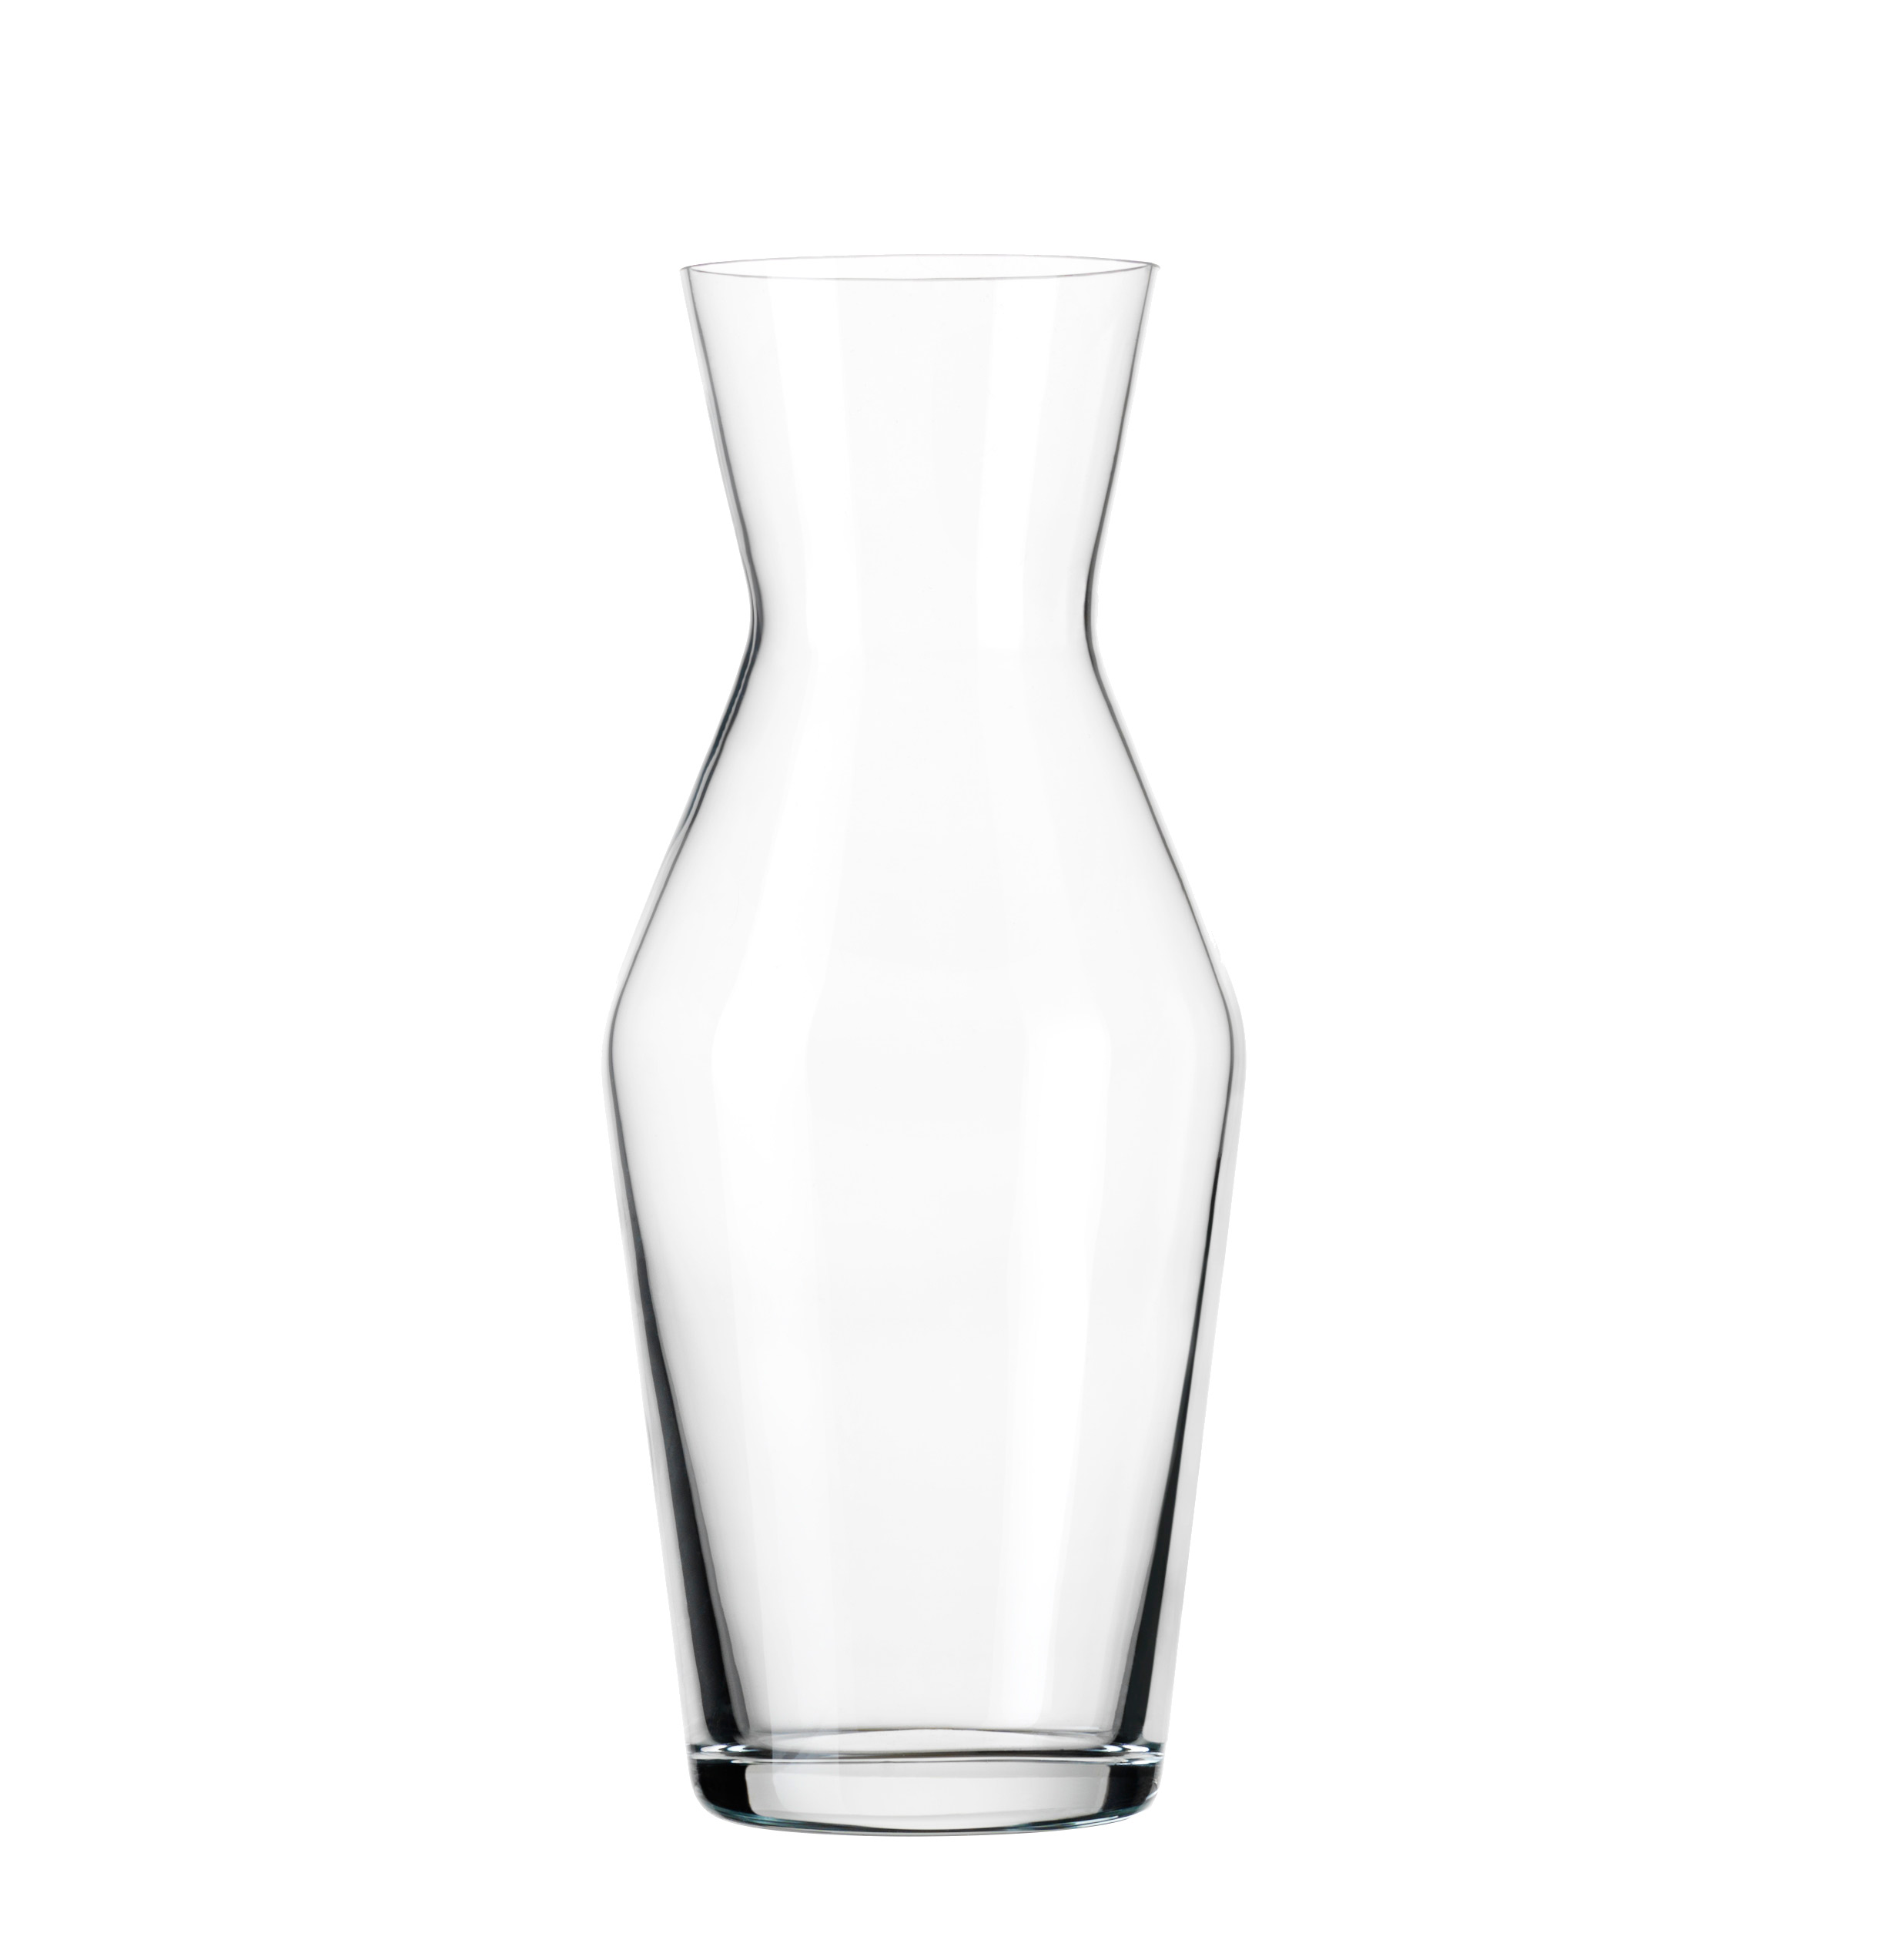 Libbey Glass 9030 decanter carafe